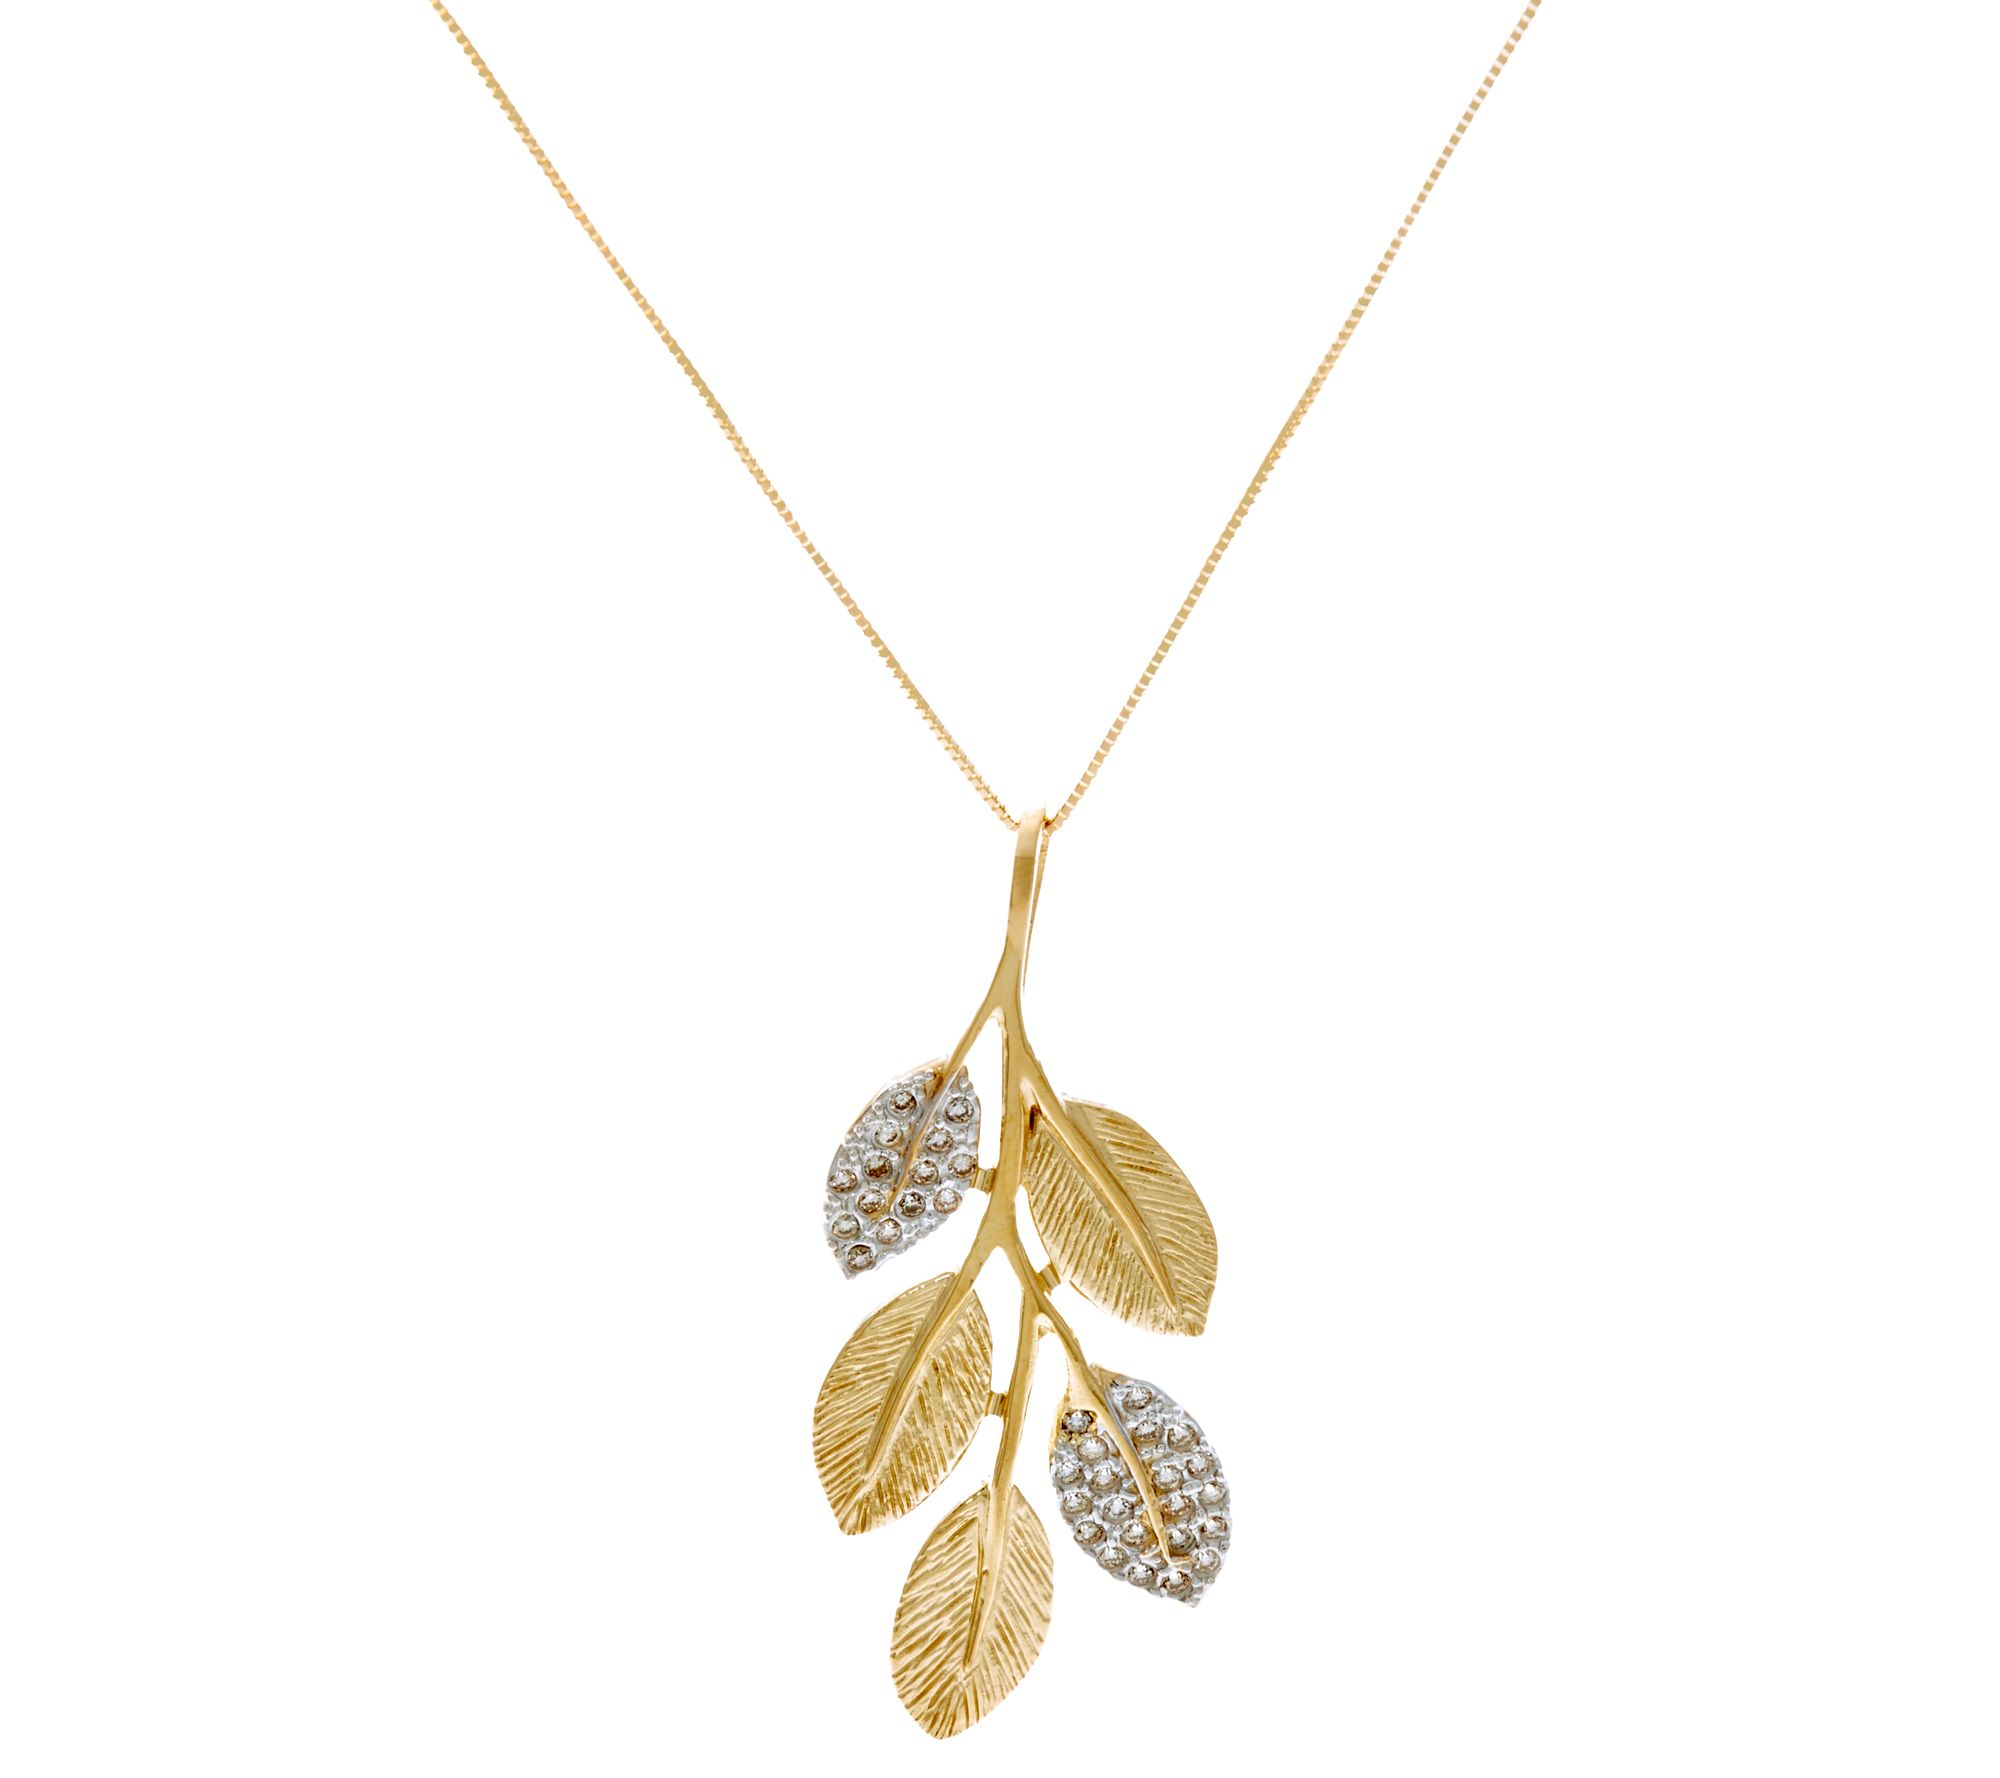 party solid leaf woman partychristmas jewelry accessories pendant from gold gvbori fine in design on hollow christmas pendants women rose for gift item